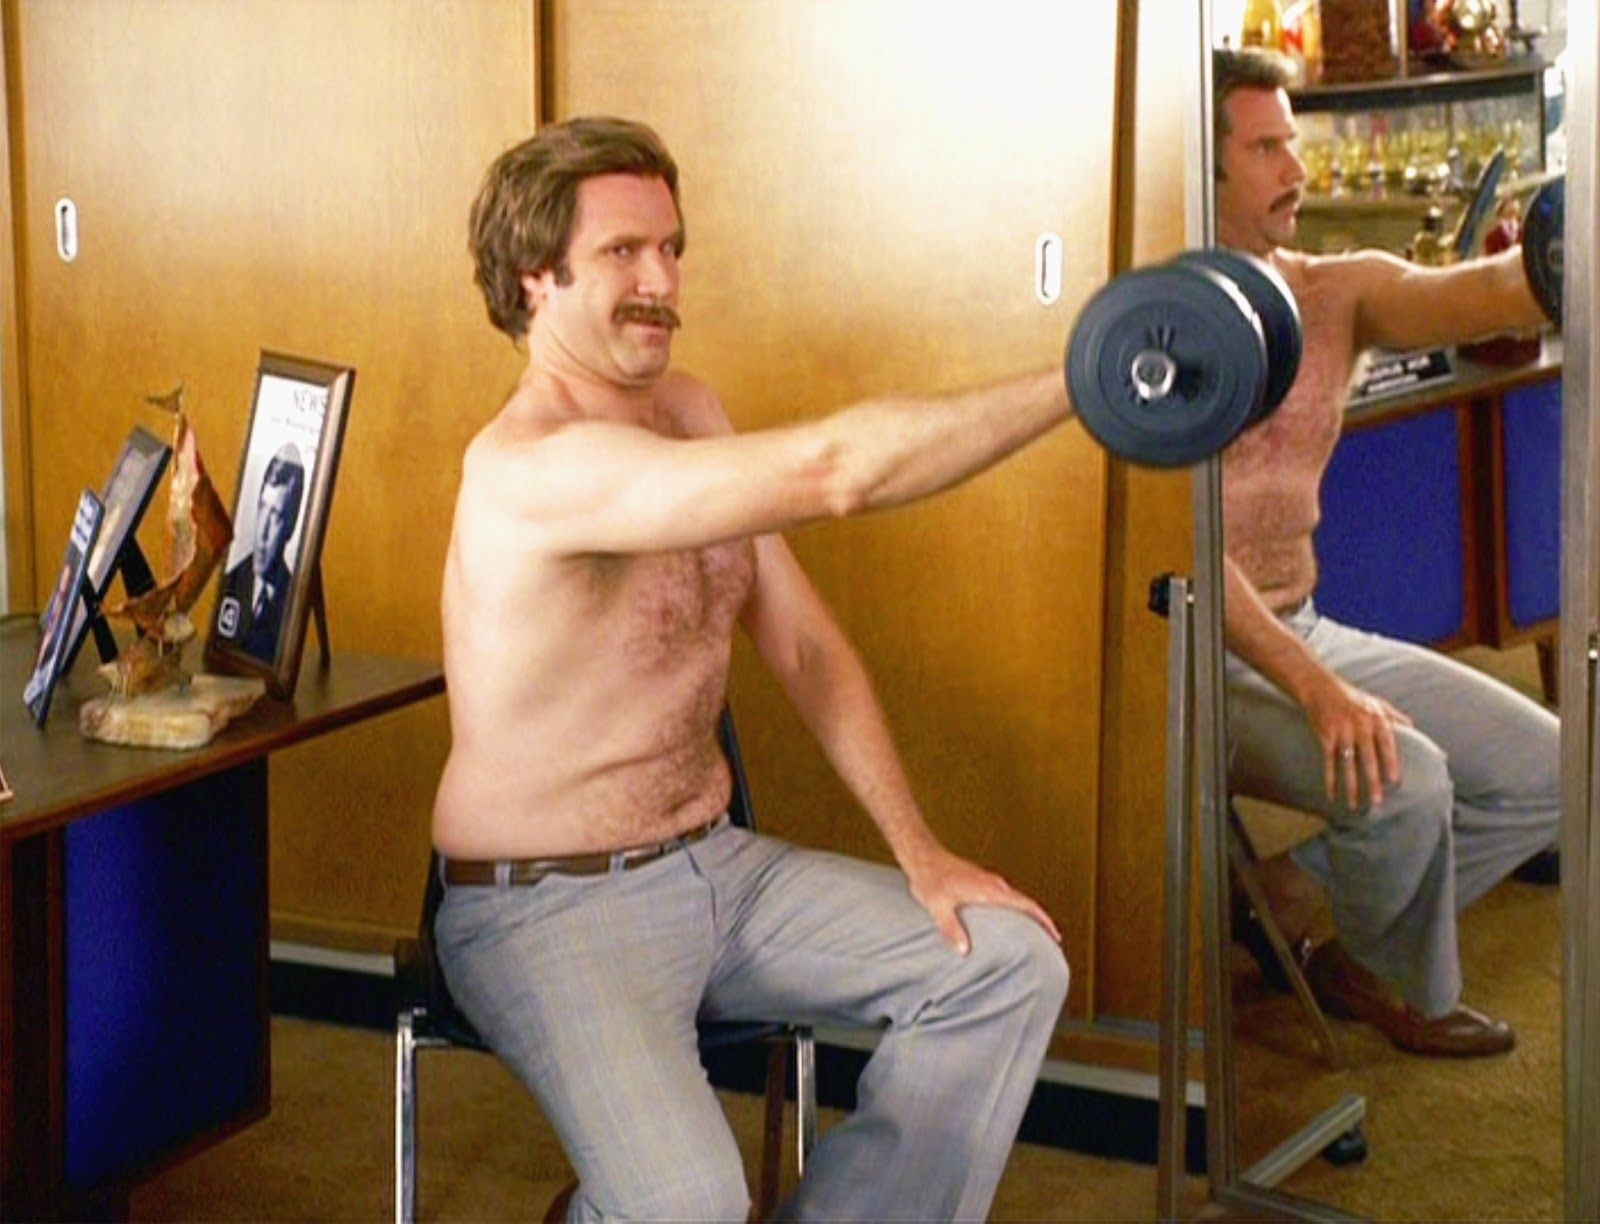 11 Of The Easiest Ways To Work Off Your Beer Belly